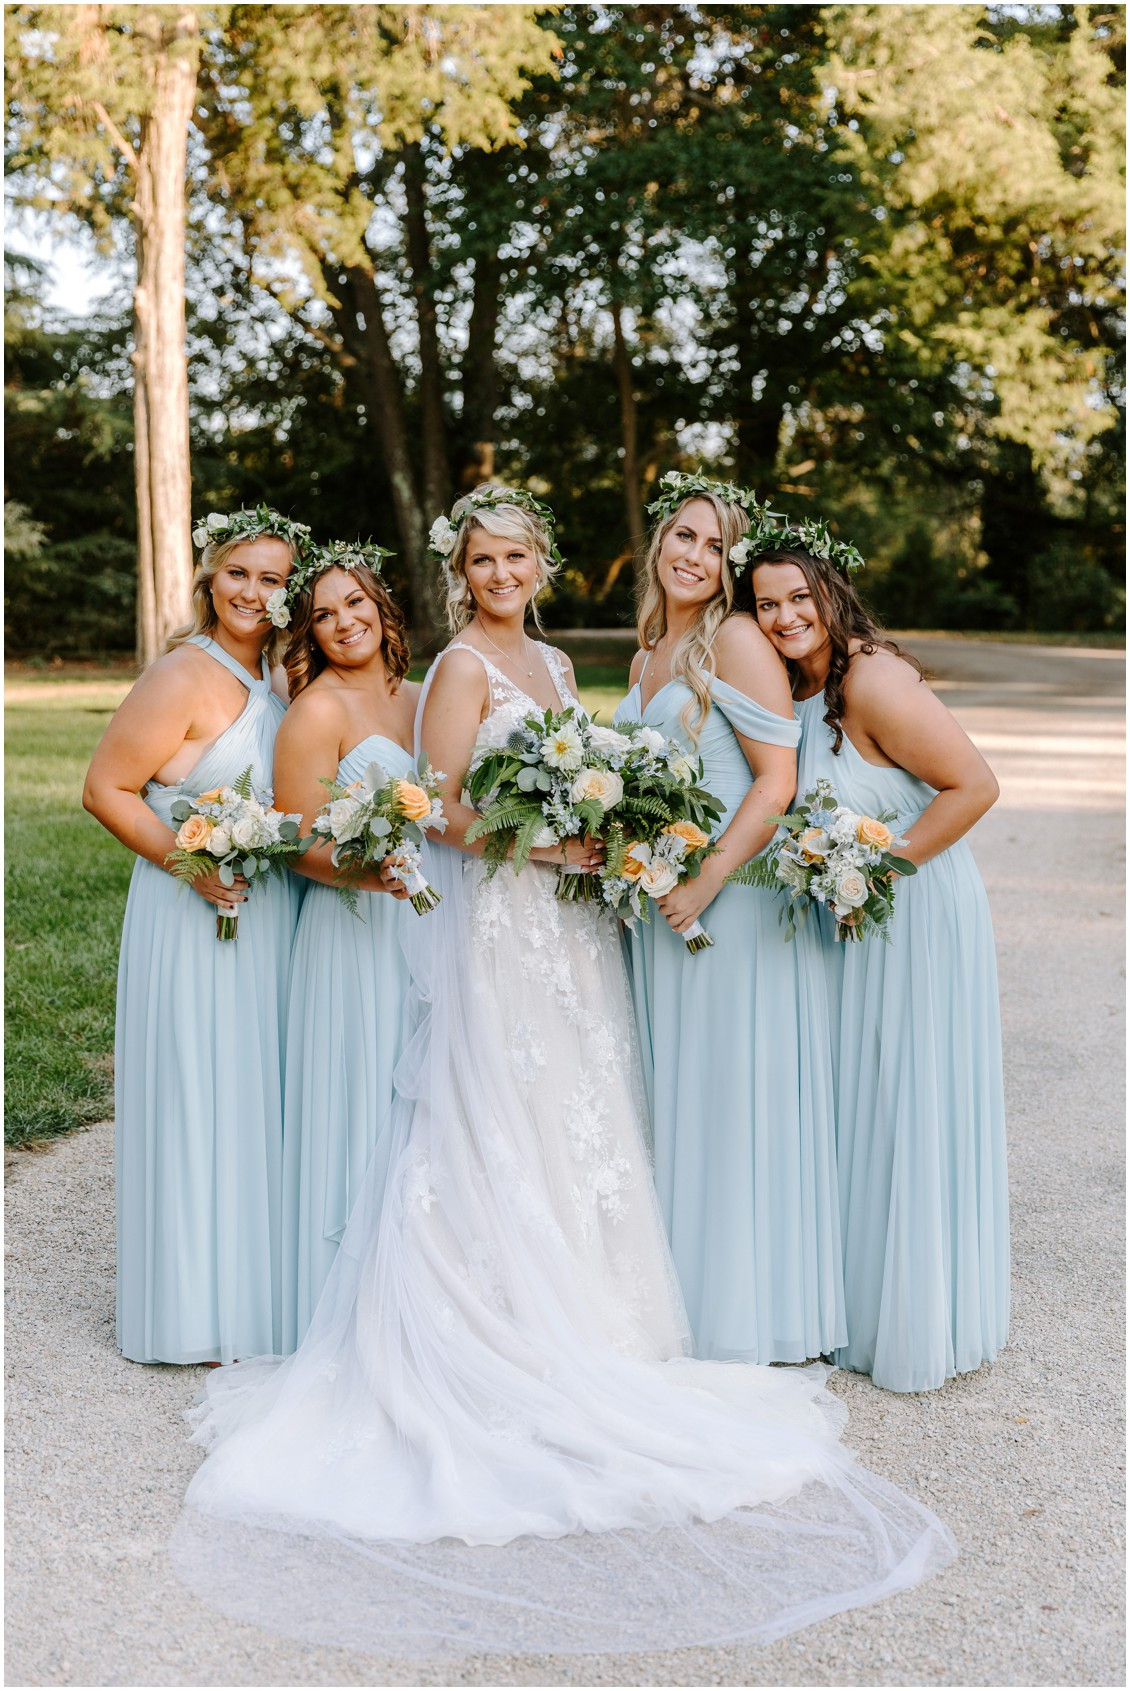 Bride with bridesmaids in soft blue dresses with pops of peach| My Eastern Shore Wedding | Sherwood Florist | Eastern Shore Tents and Events